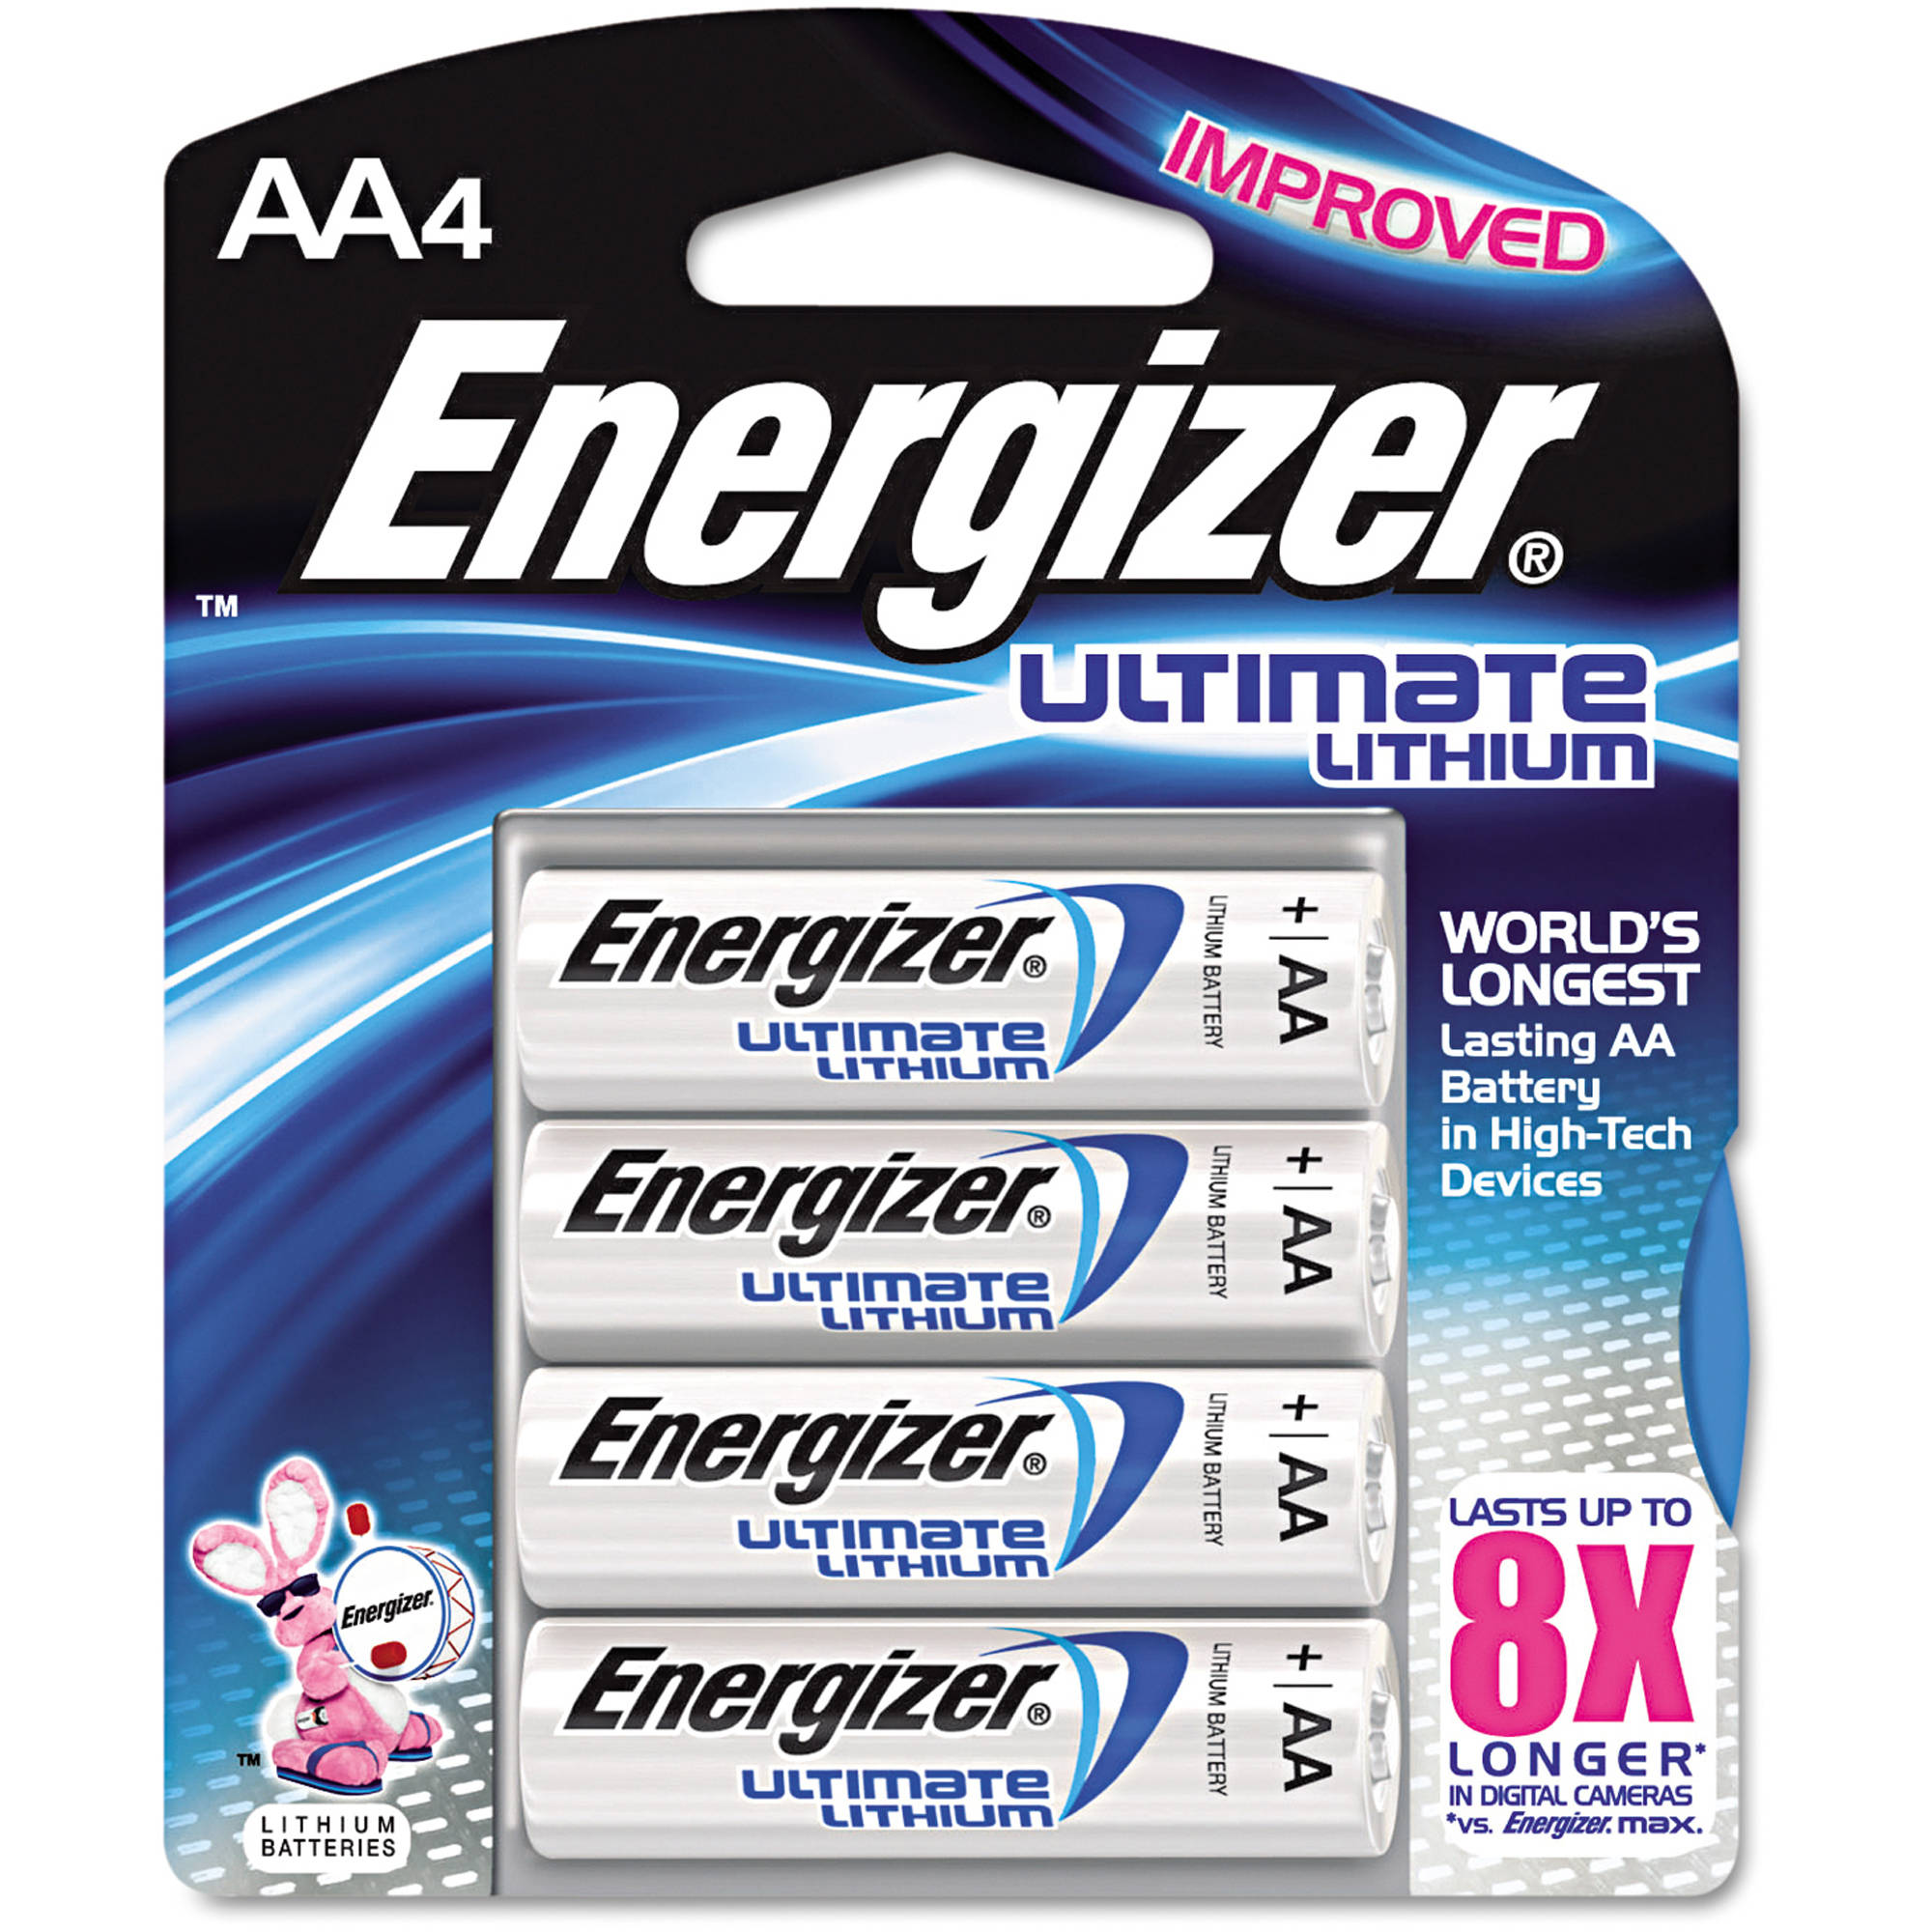 Energizer e2 Lithium Batteries, AA, 4-pack